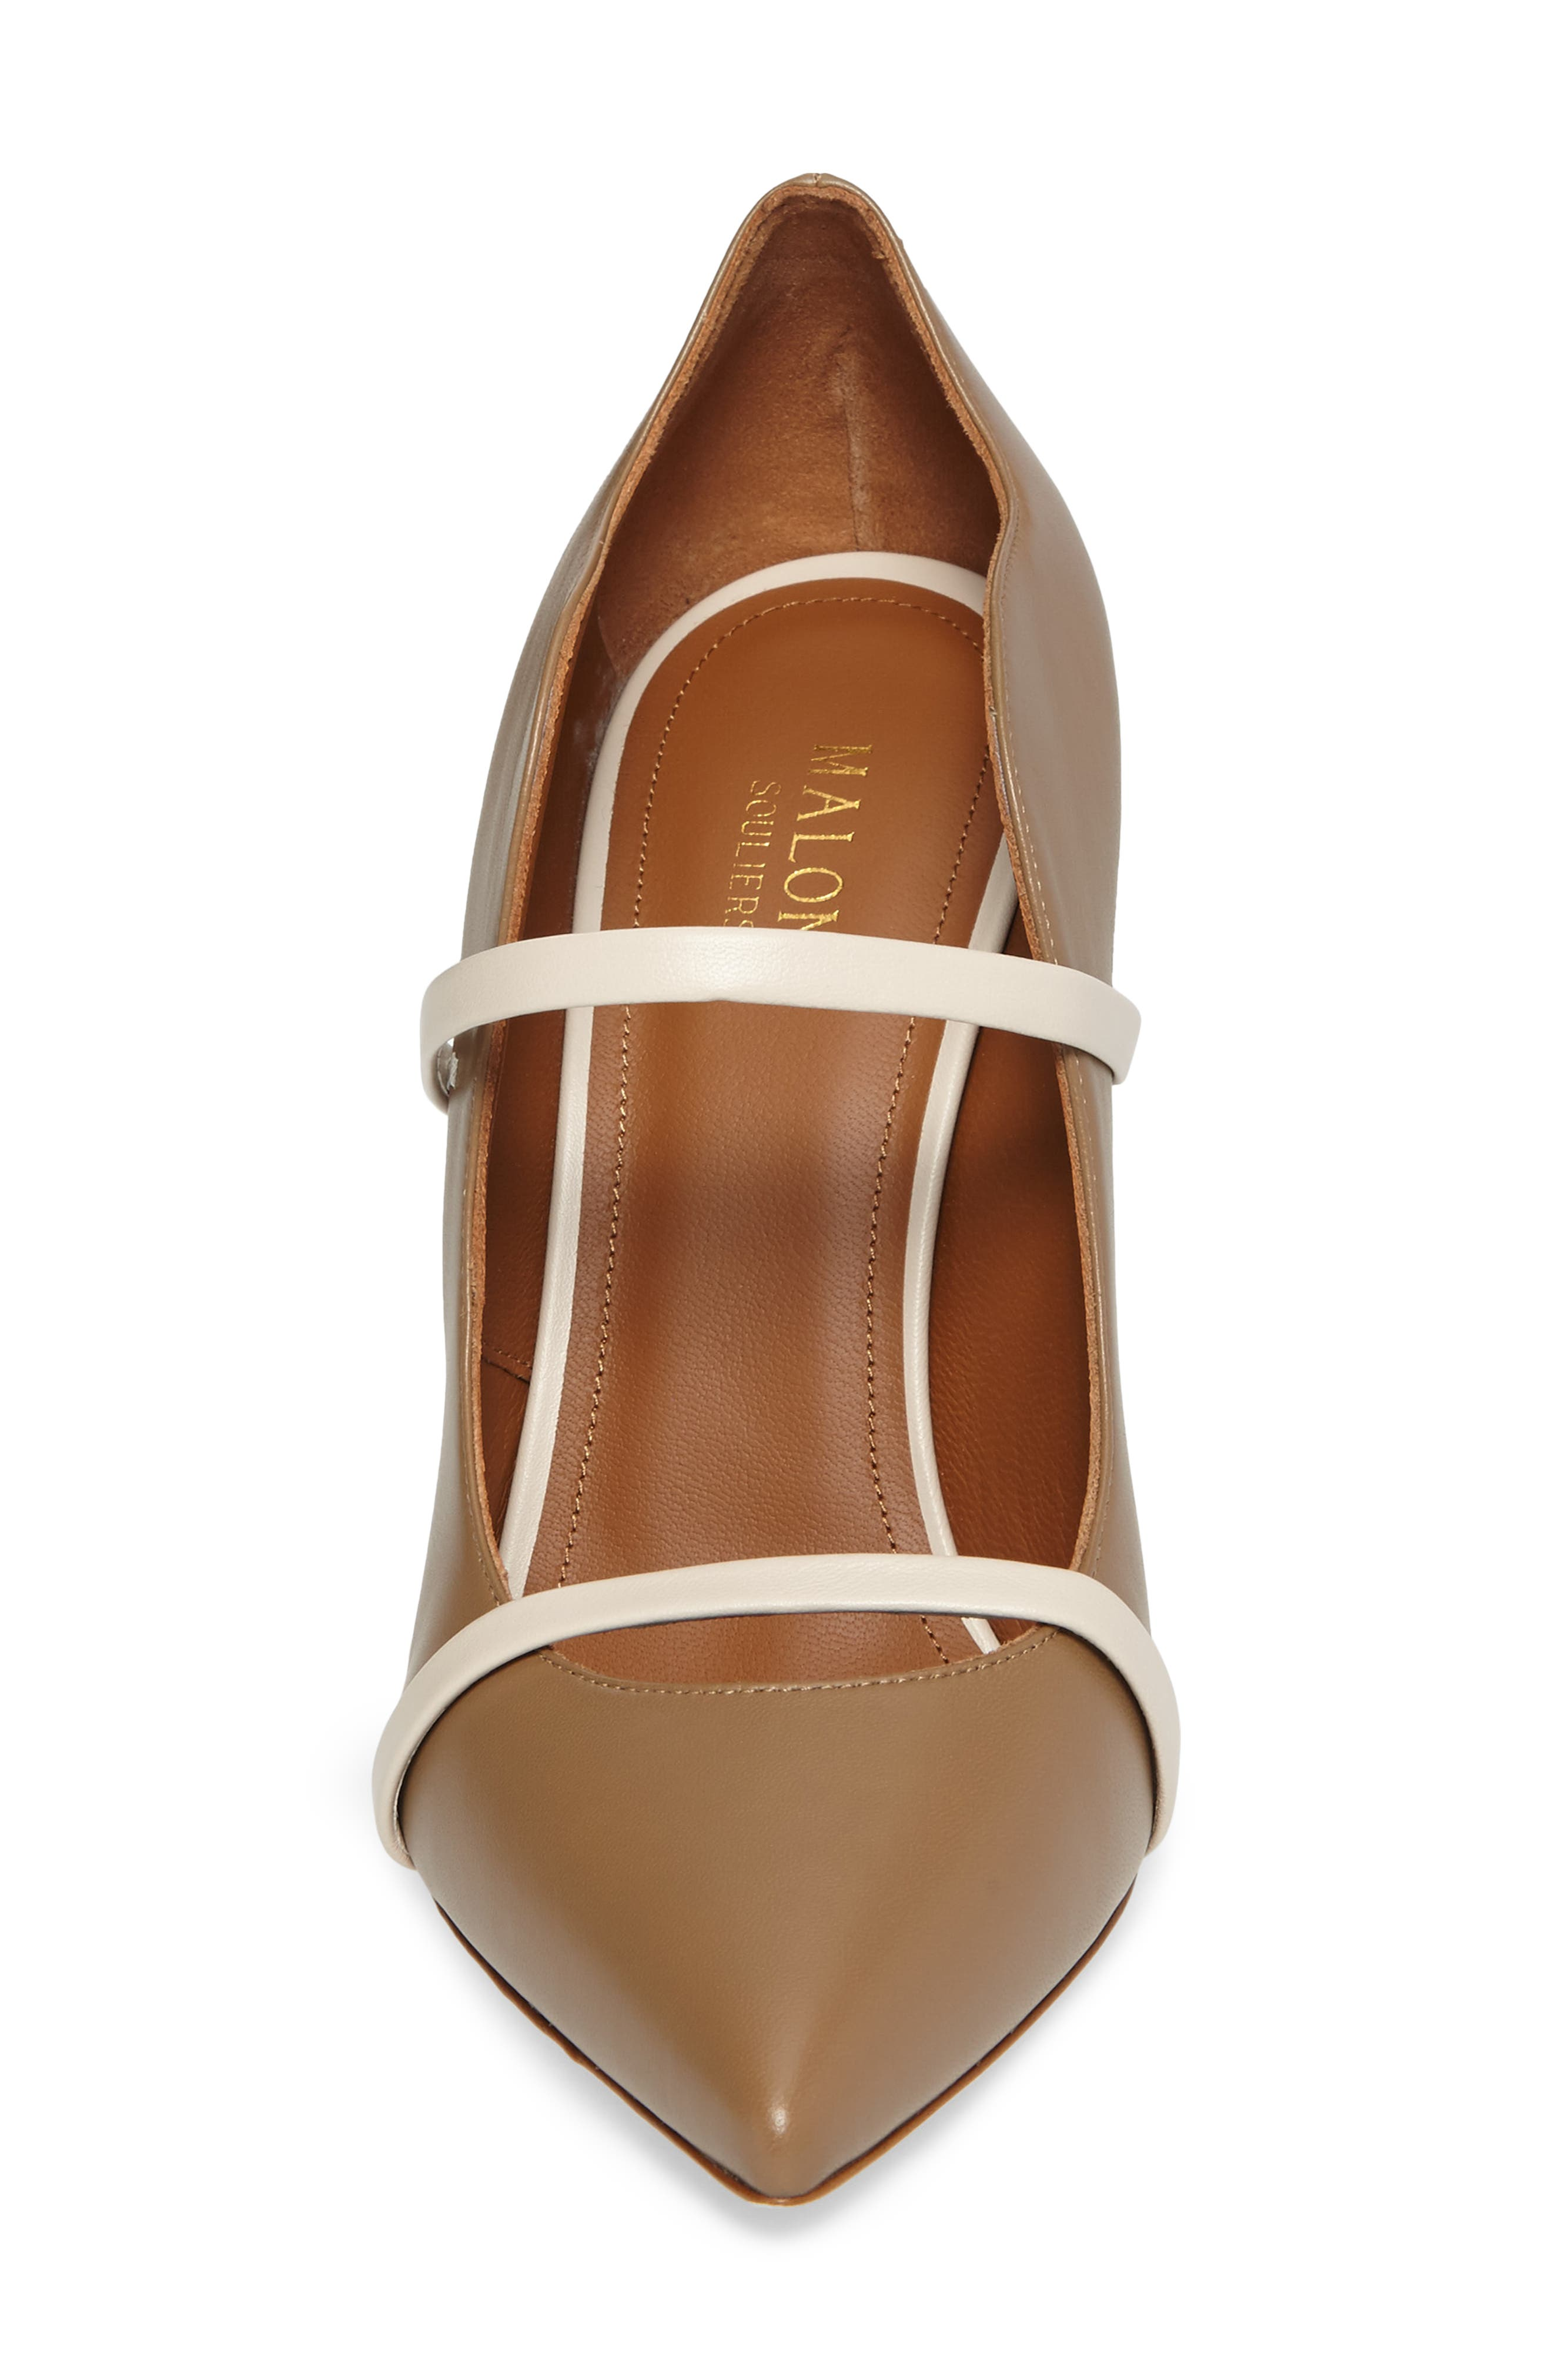 Maureen Double Band Pump,                             Alternate thumbnail 4, color,                             Chocolate/ White Leather